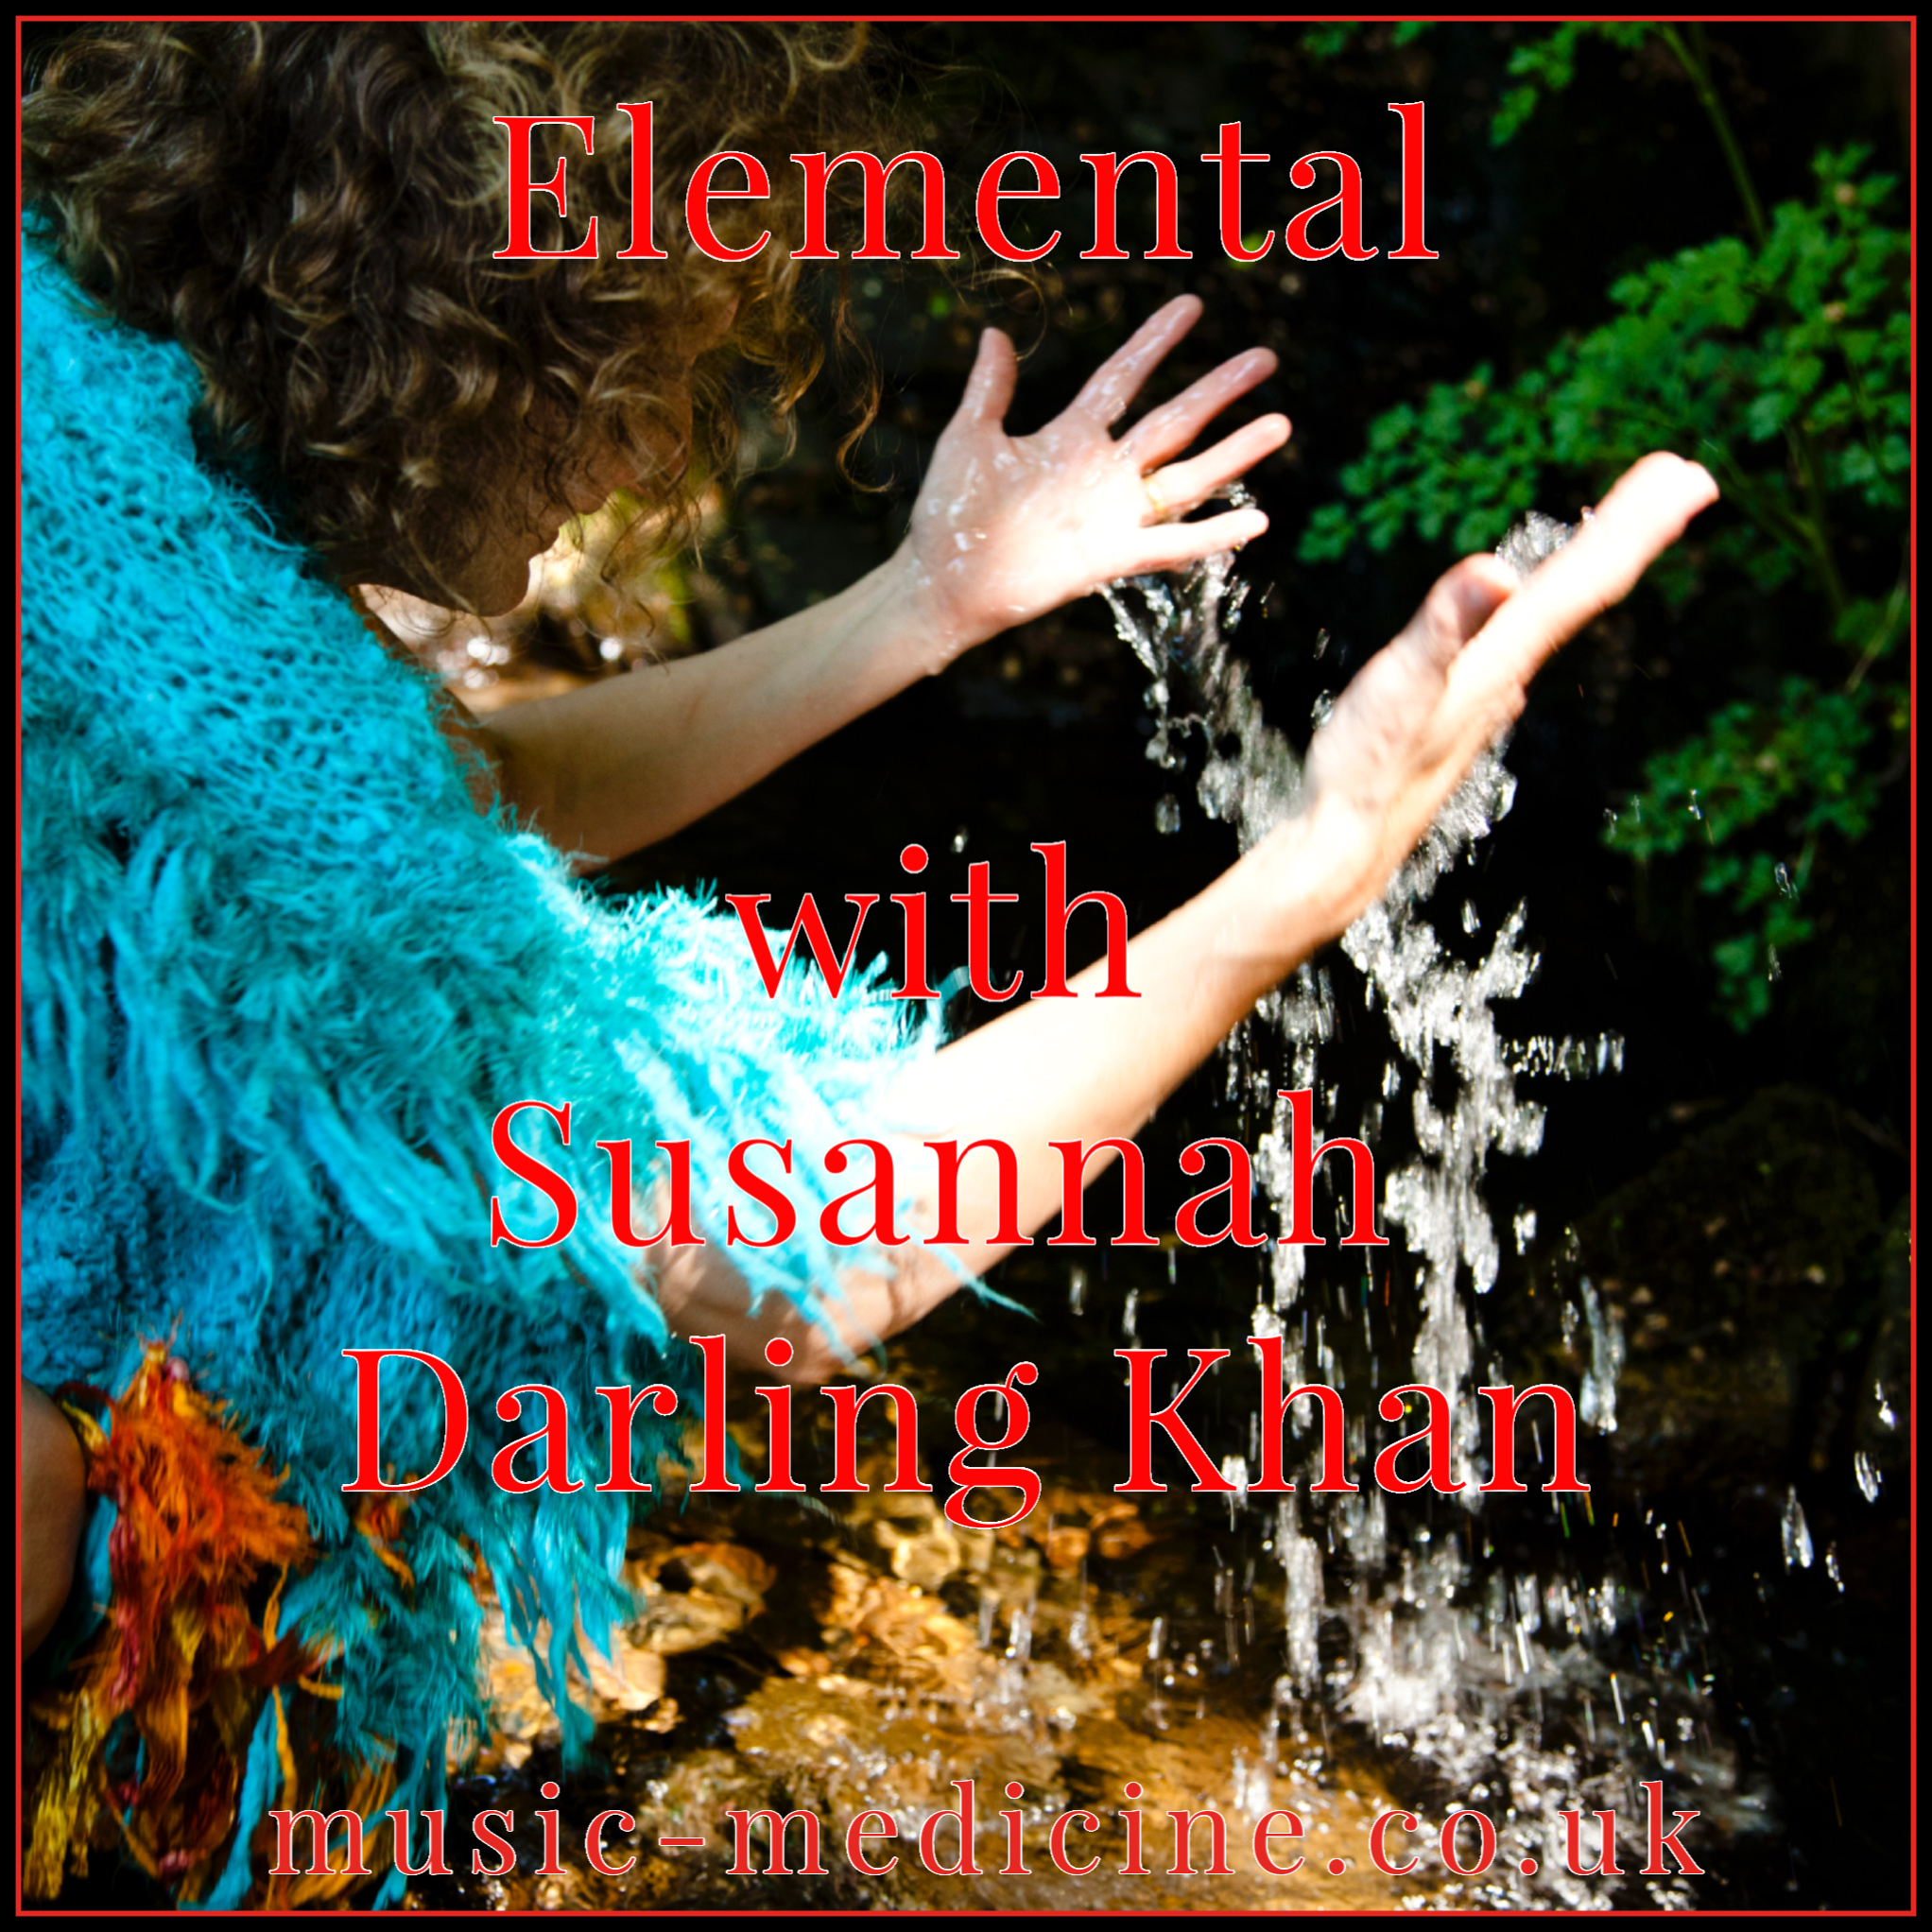 MP3 - 01 Greeting The Elements (From Movement Medicine Guided Journey II)